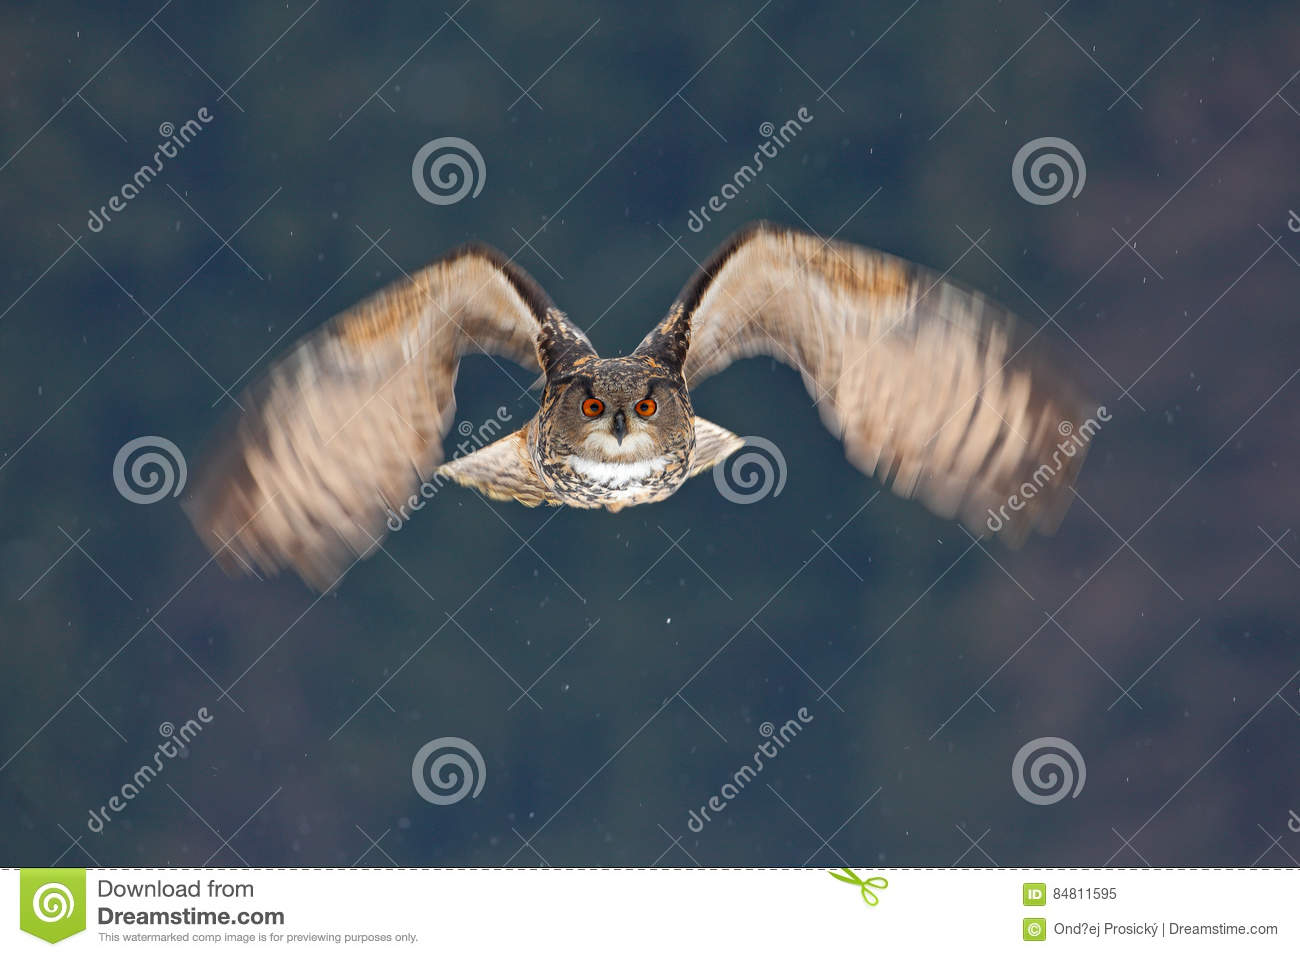 Face fly of owl. Flying Eurasian Eagle owl with open wings with snow flake in snowy forest during cold winter. Action wildlife sce